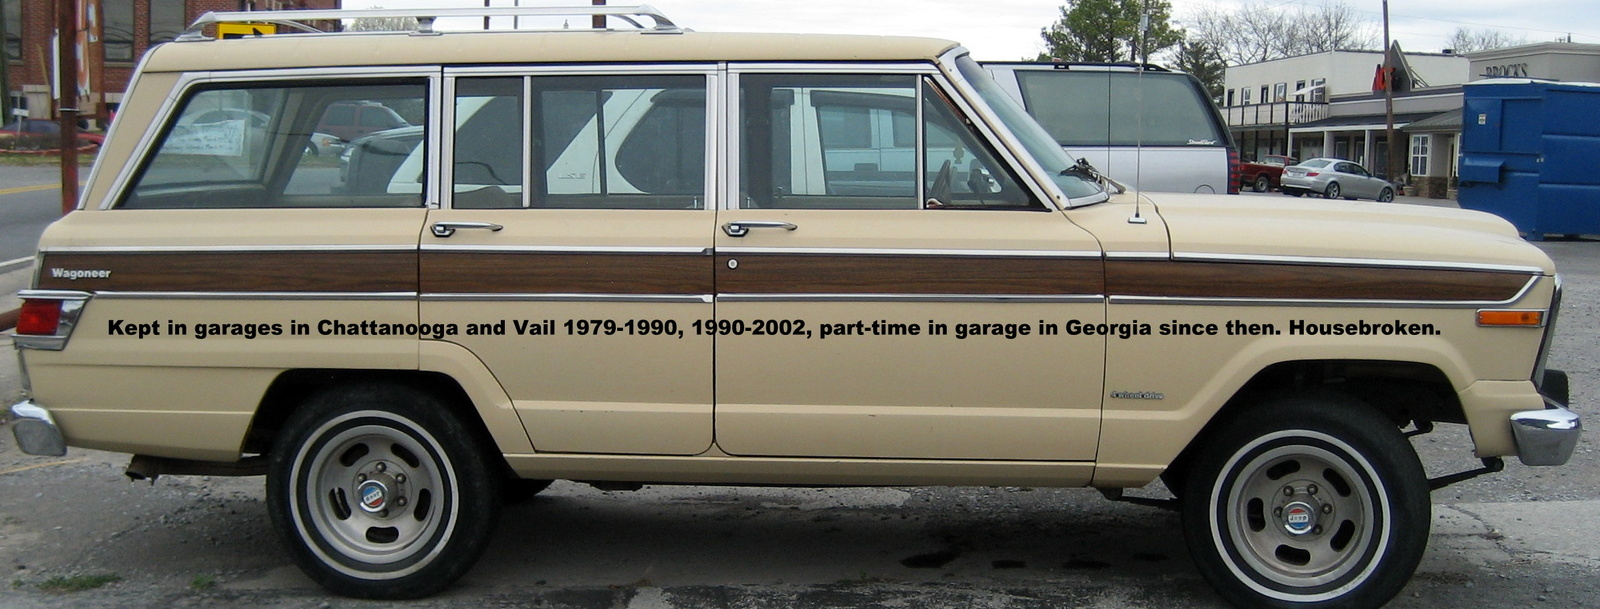 1979 jeep wagoneer right side view showing wood grain strip exterior